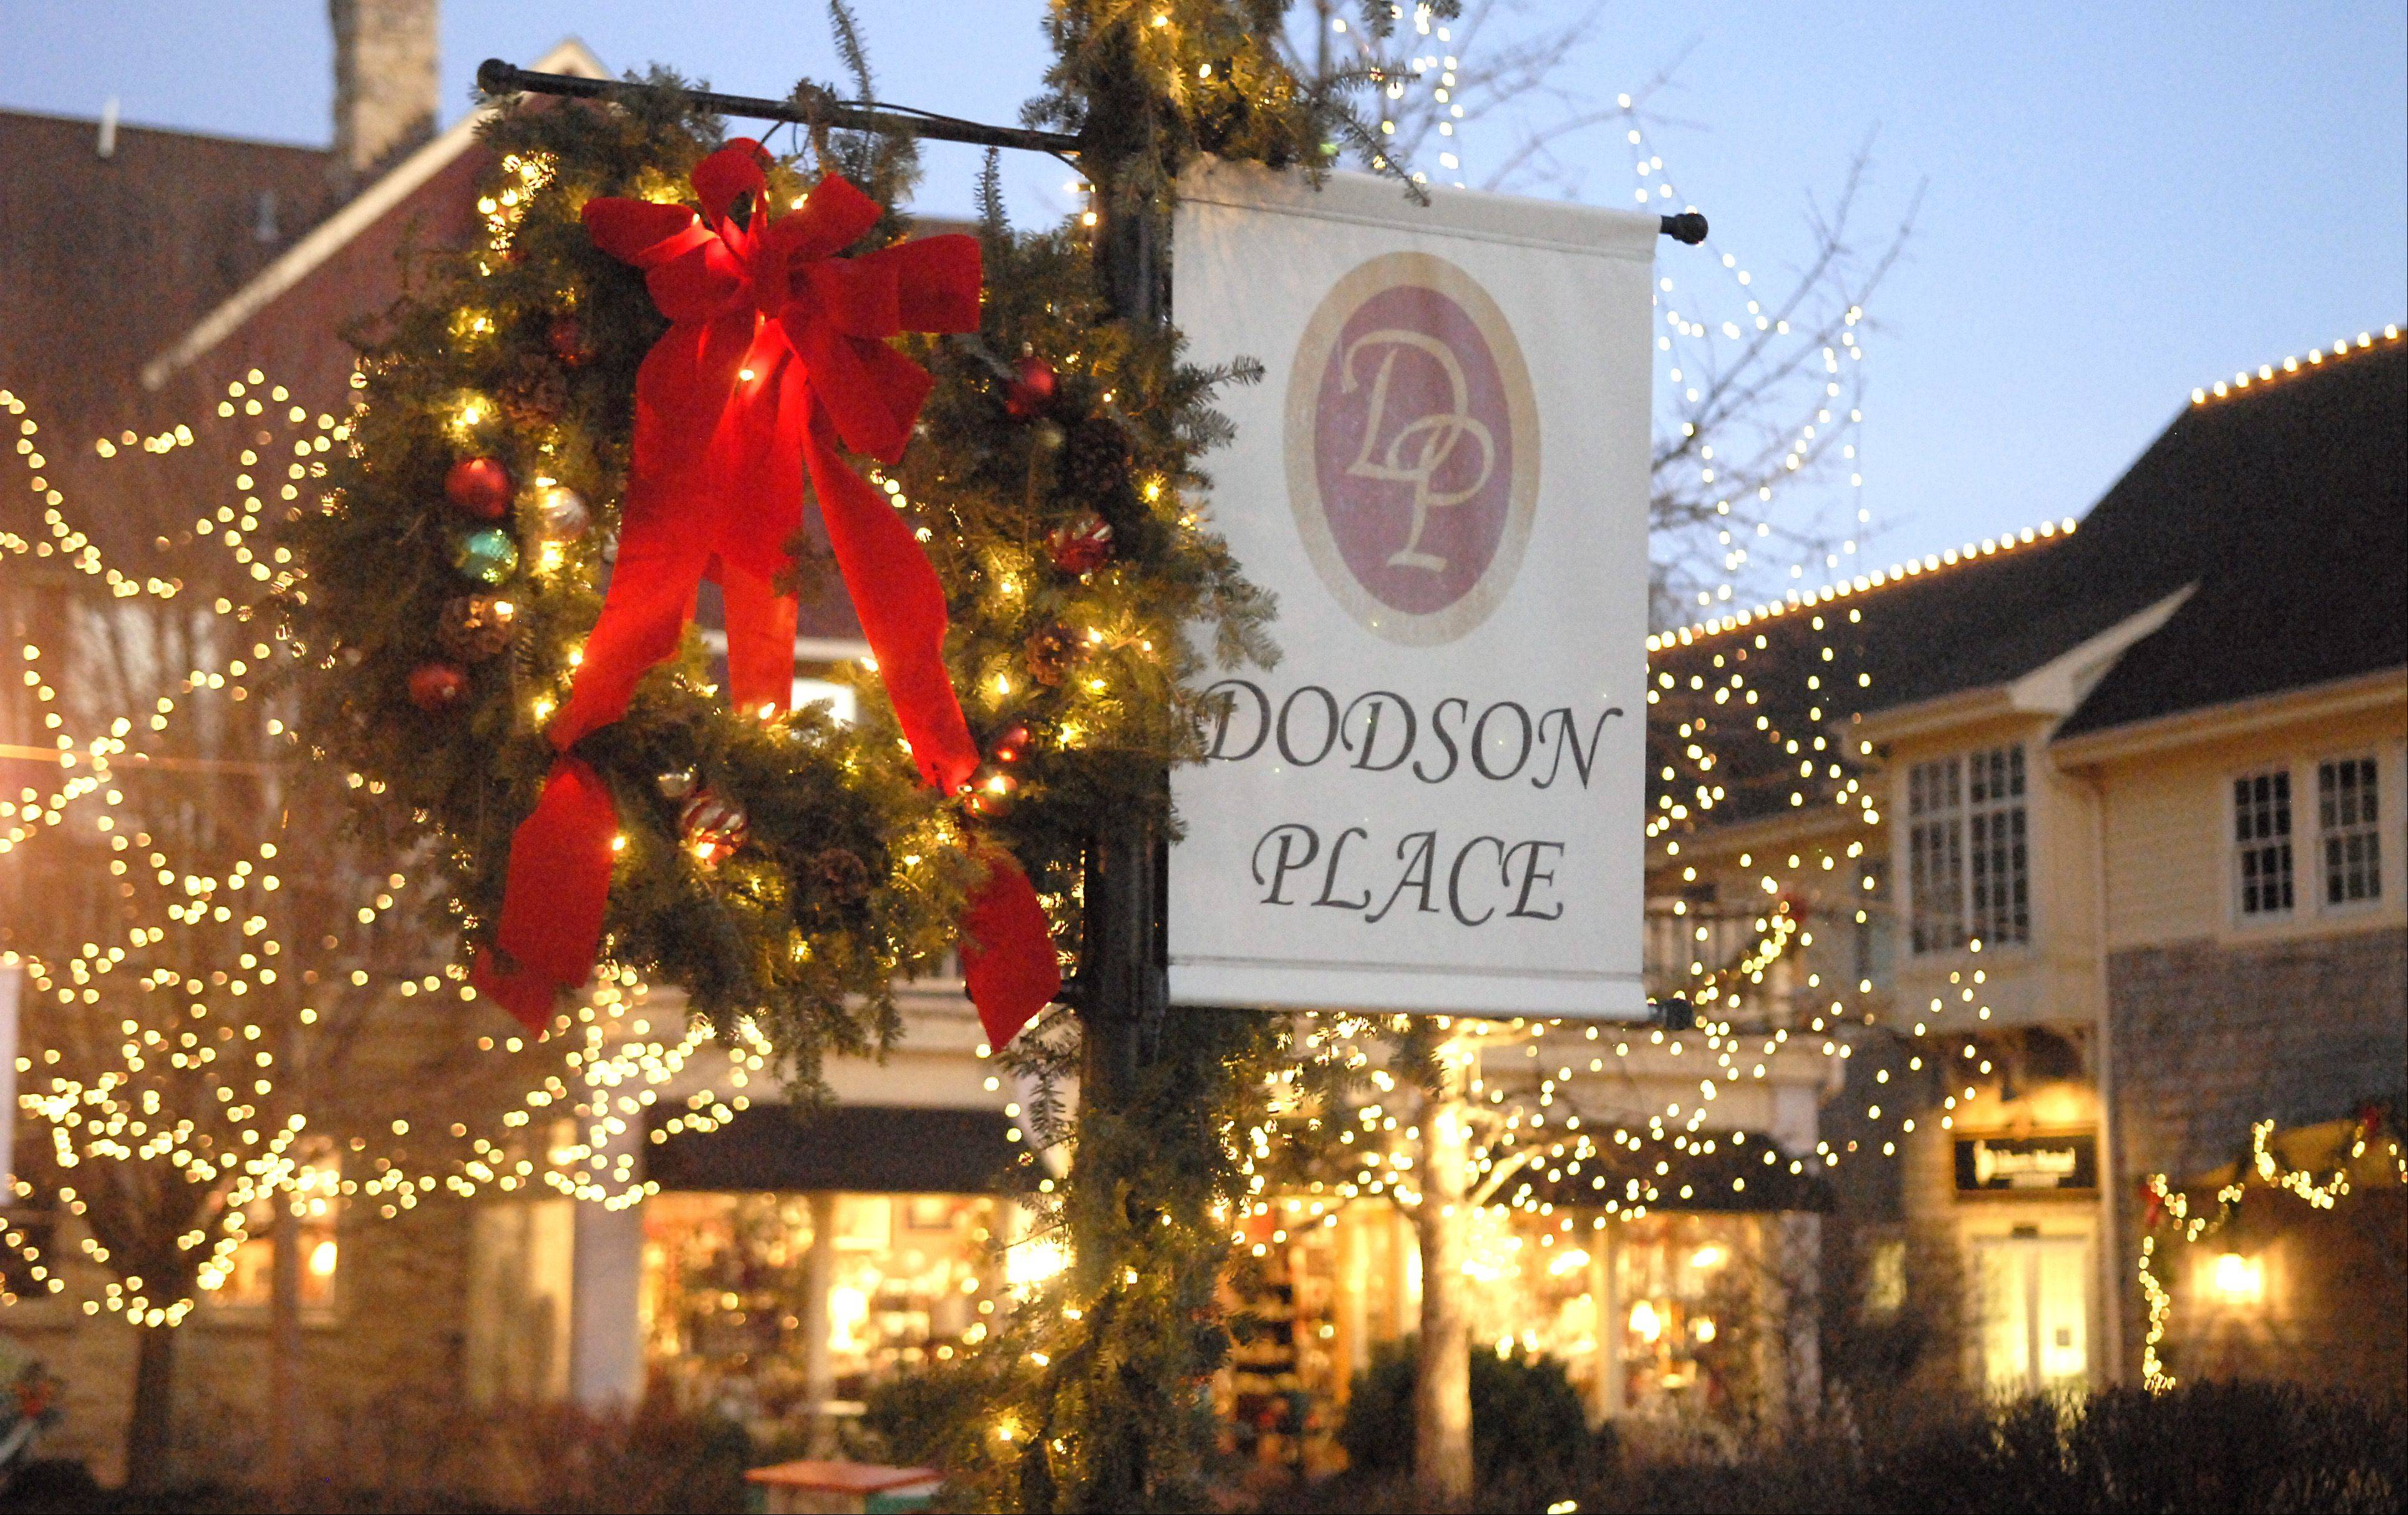 It's a bright, festive environment during the holidays at Dodson Place in downtown Geneva.